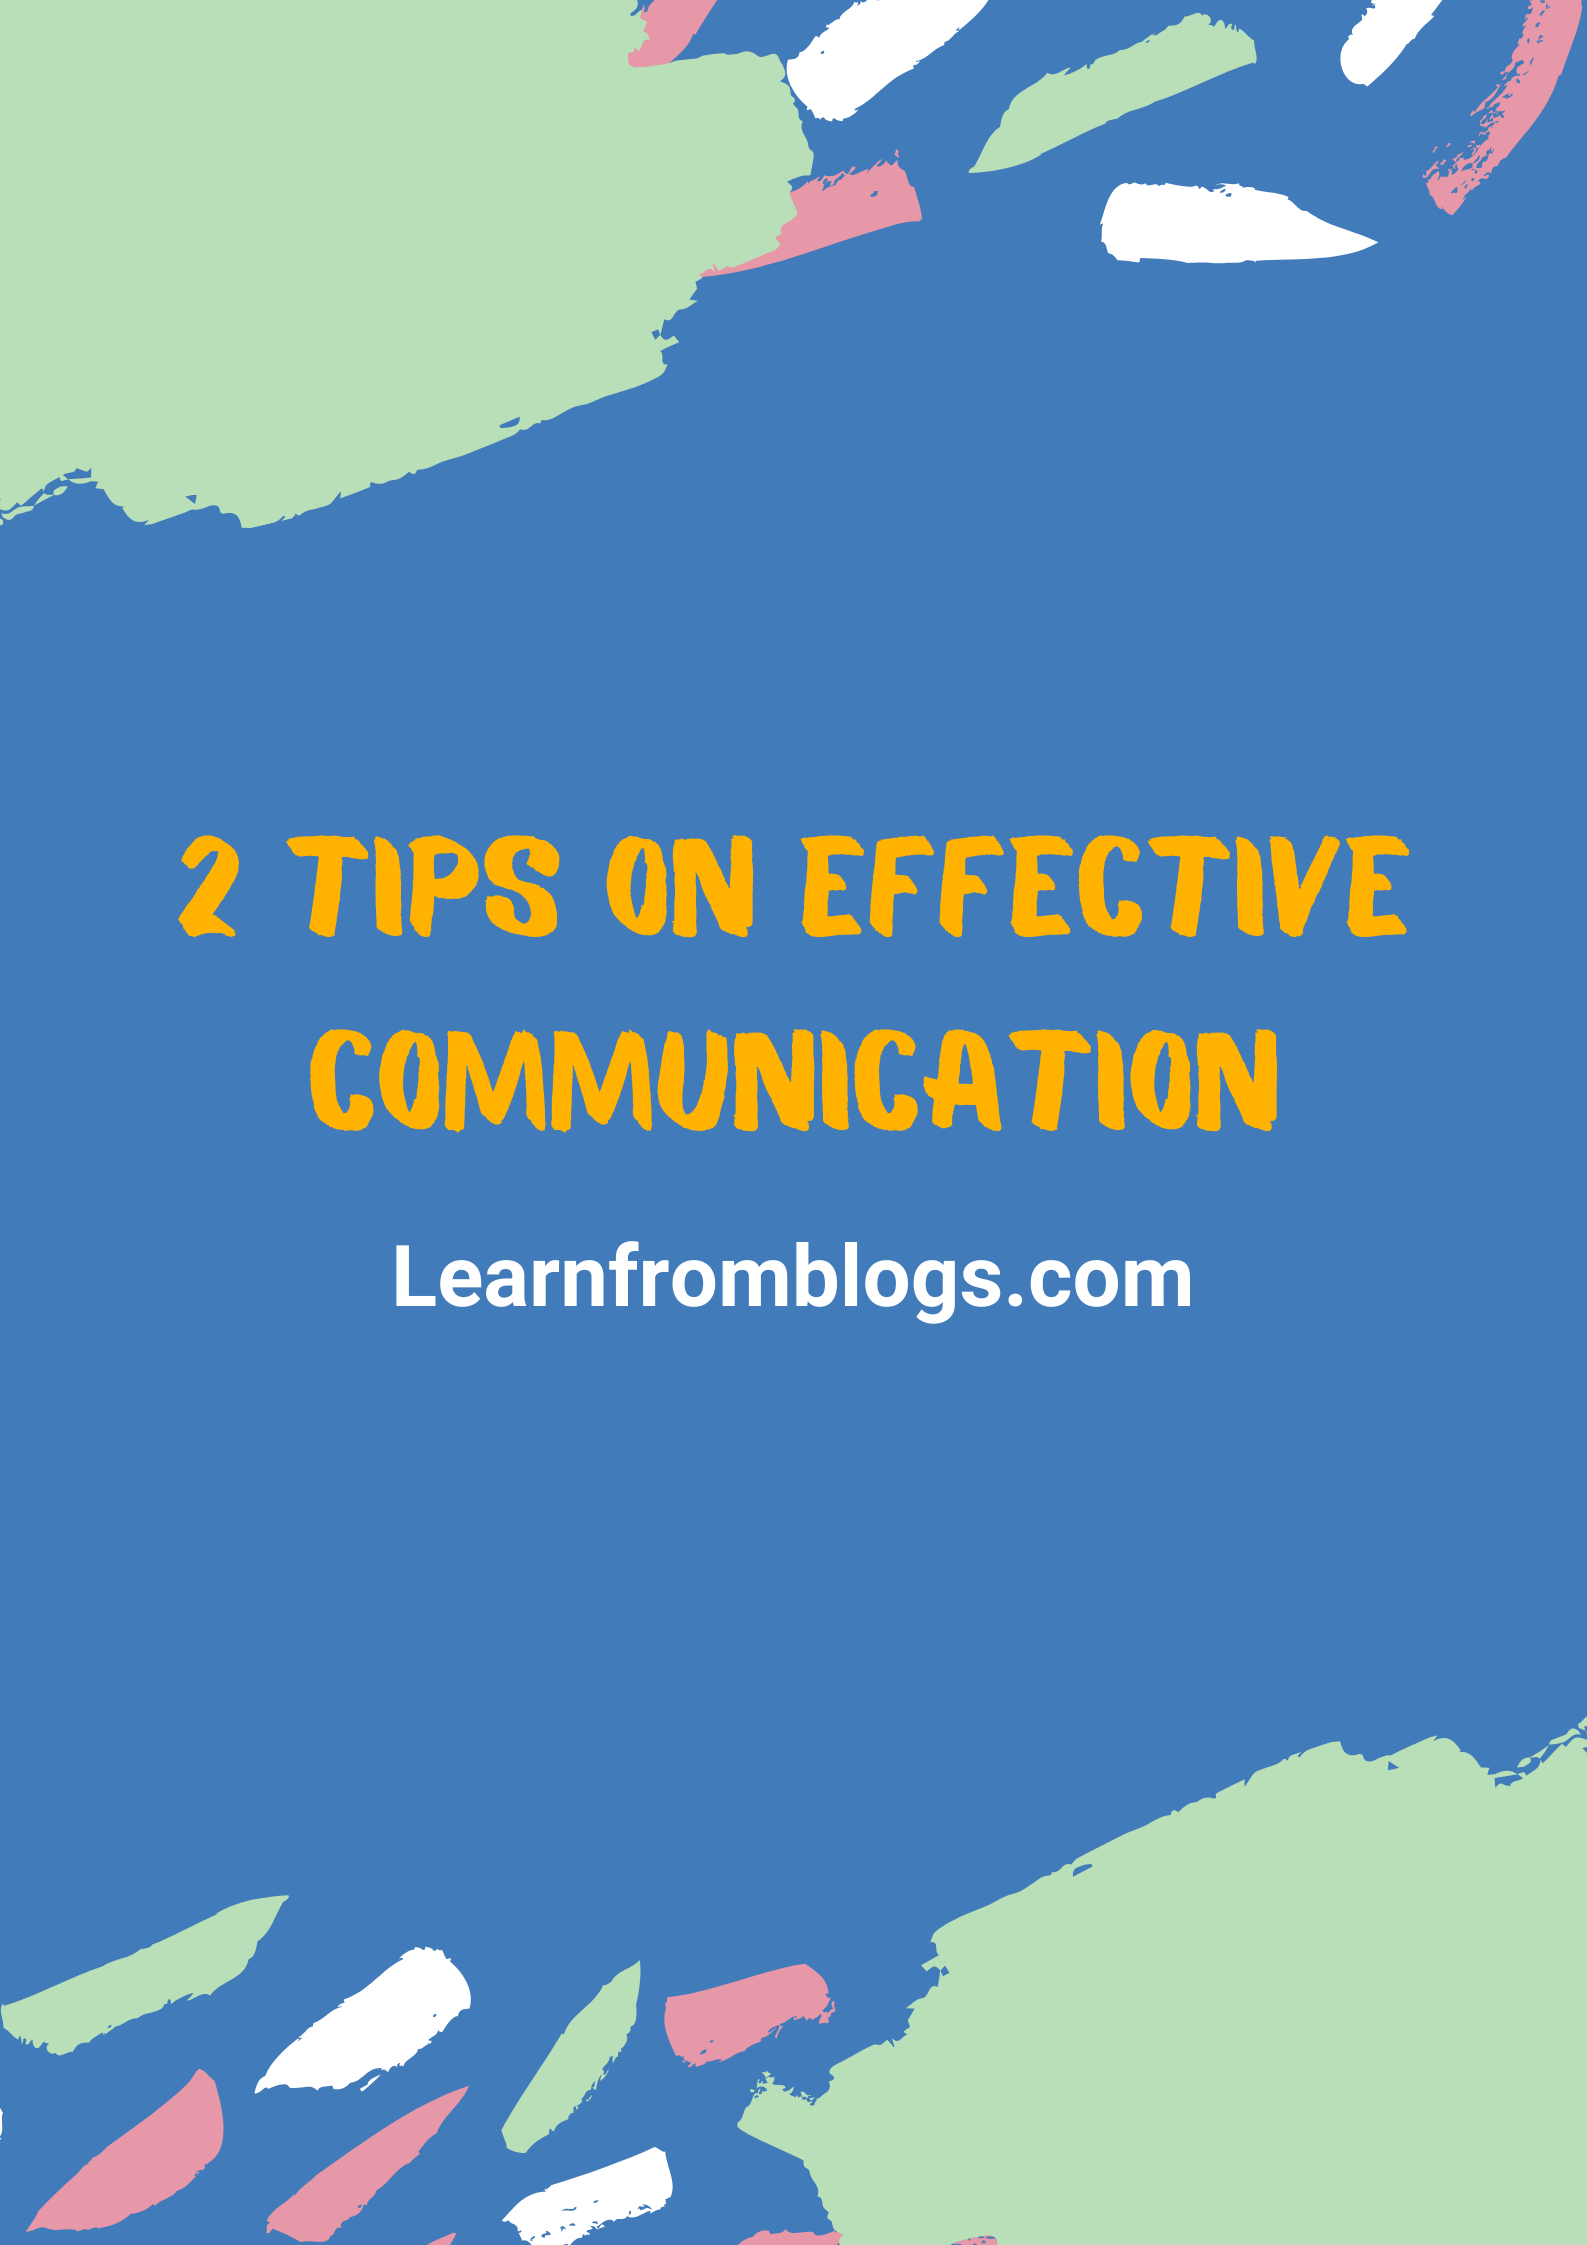 2 Tips On Effective Communication.png